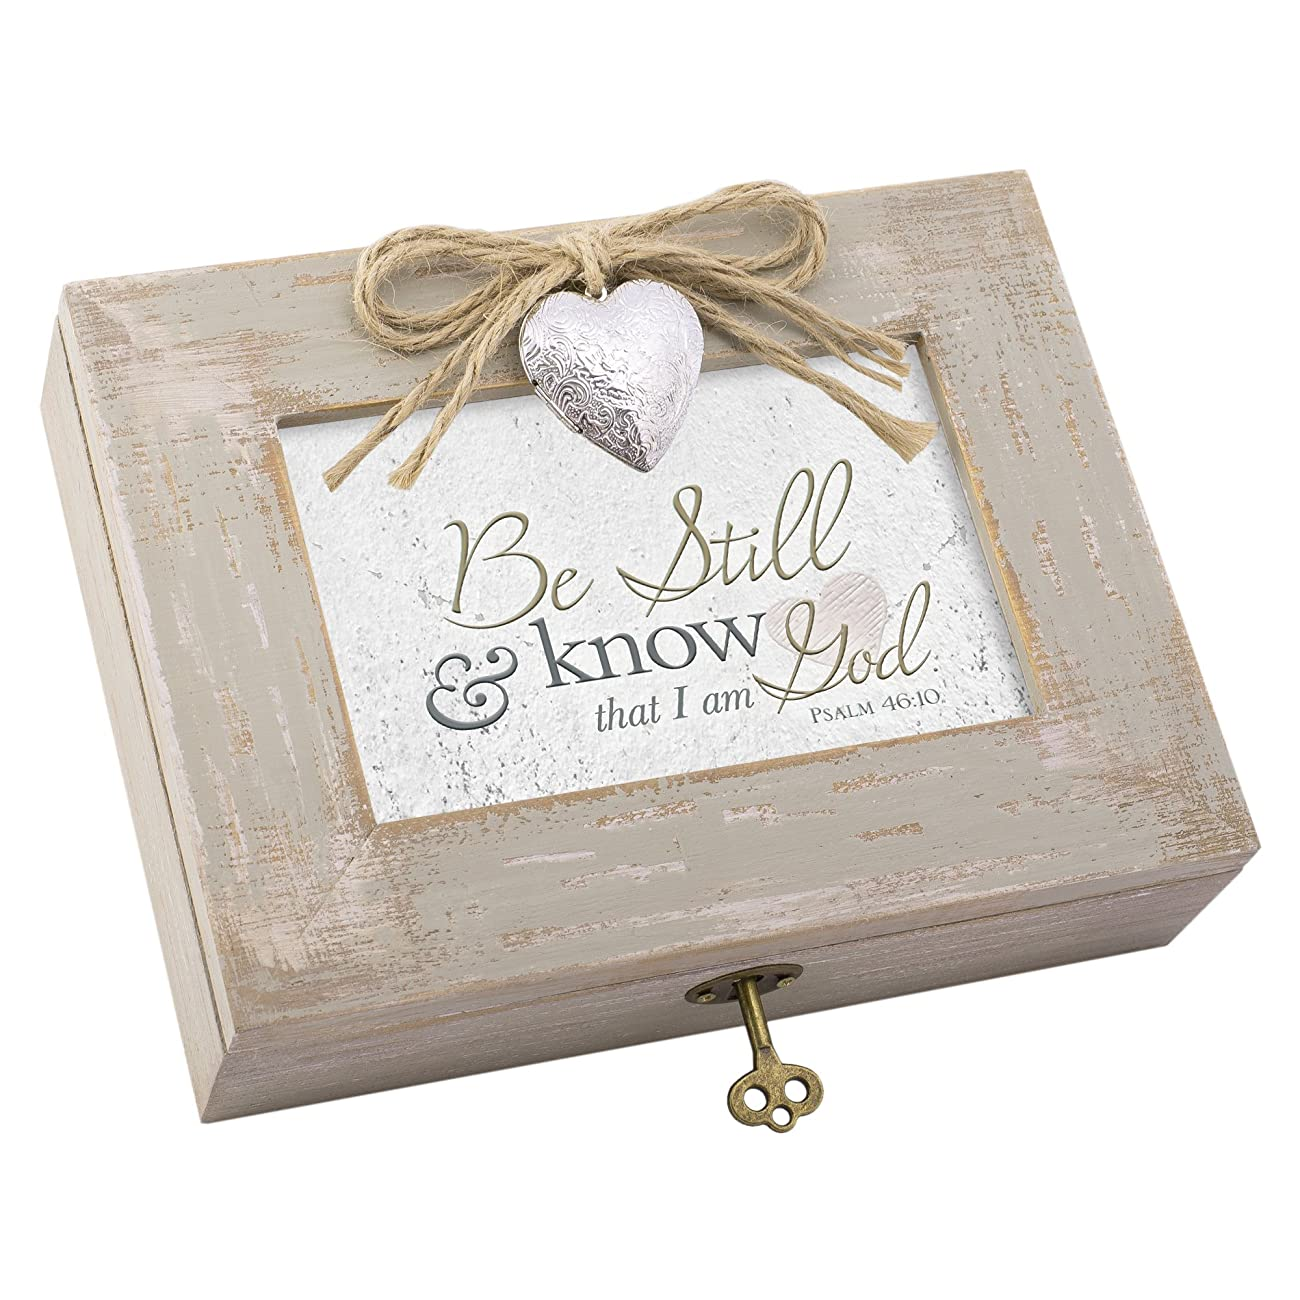 Be Still & Know That I am God Distressed Wood Locket Jewelry Music Box Plays Tune Amazing Grace 0